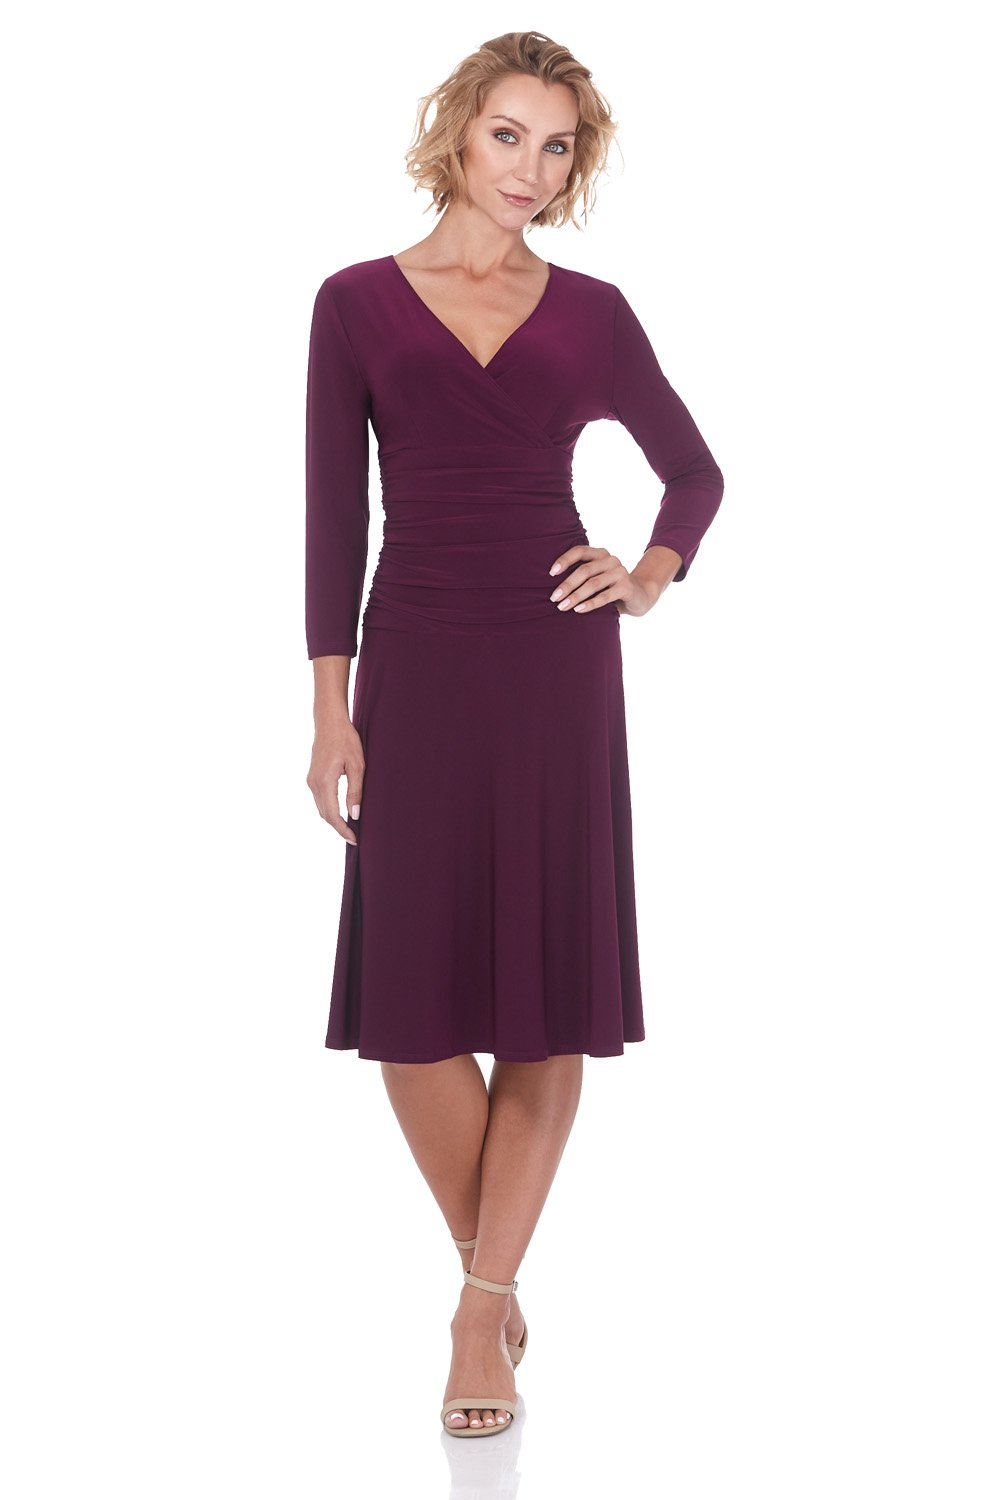 Rekucci Women's Slimming 3/4 Sleeve Fit-and-Flare Crossover Tummy Control Dress (12,Wine)